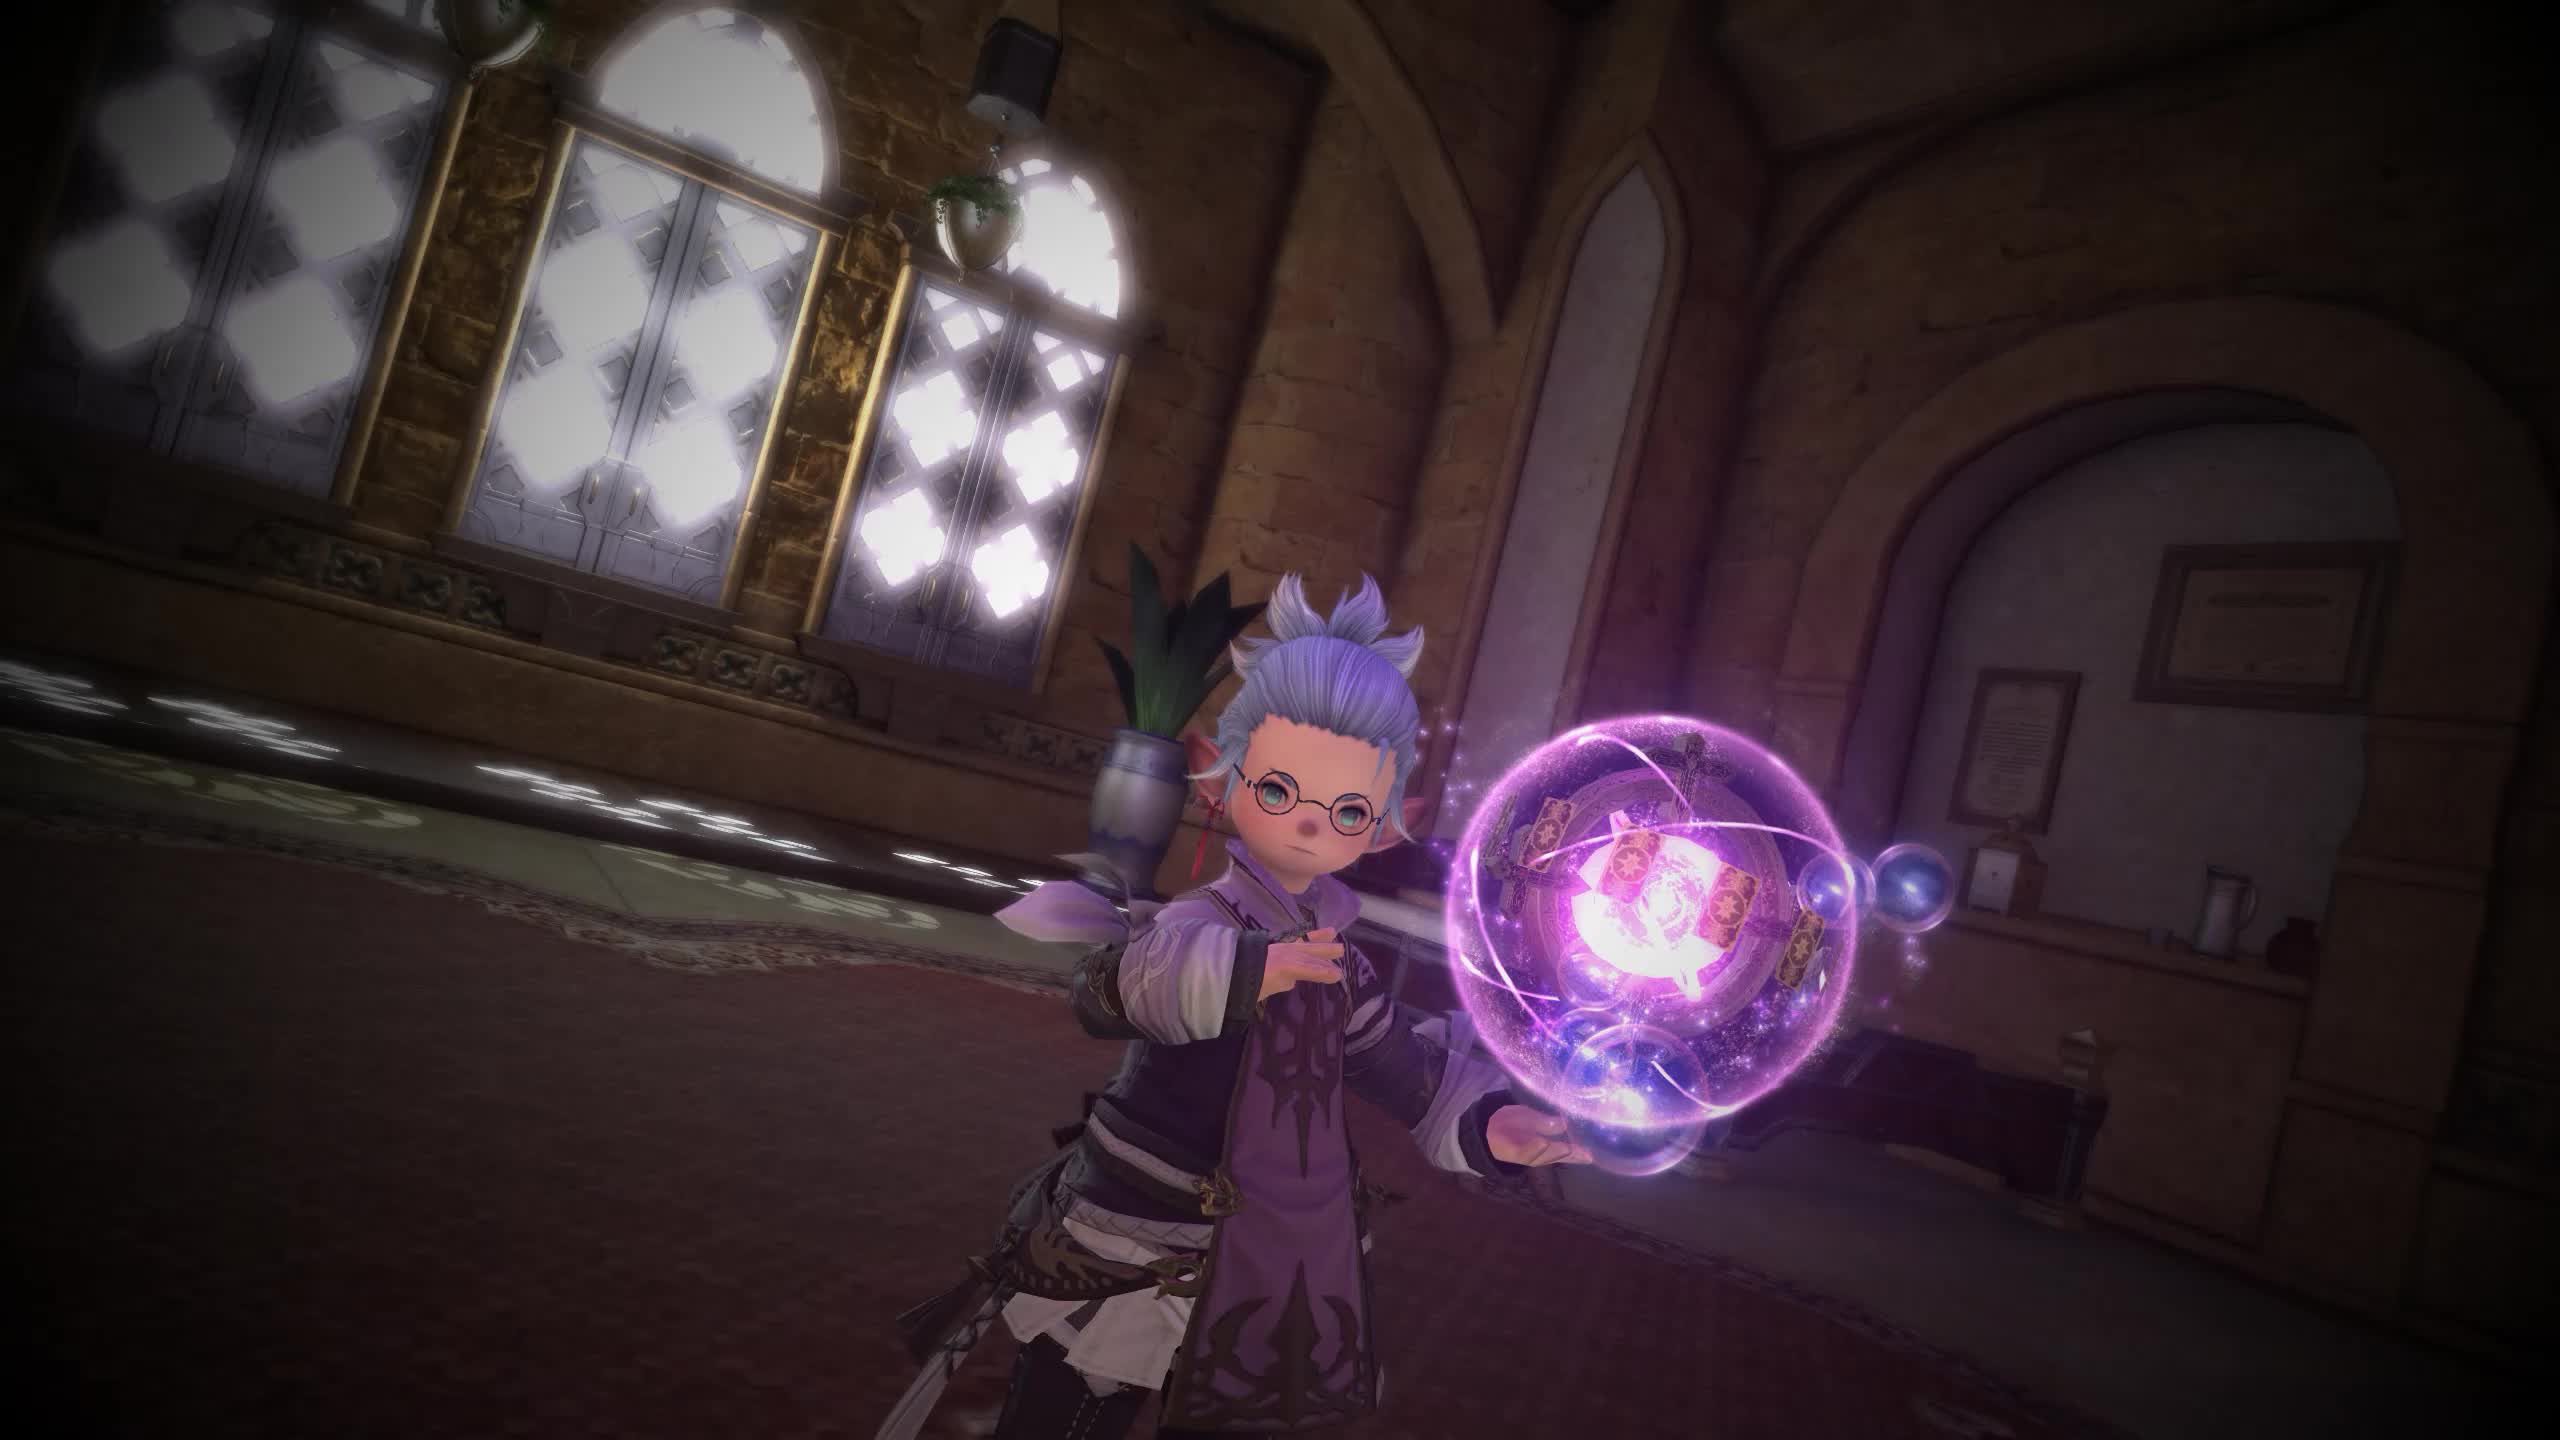 Lalafell Gifs Search   Search & Share on Homdor